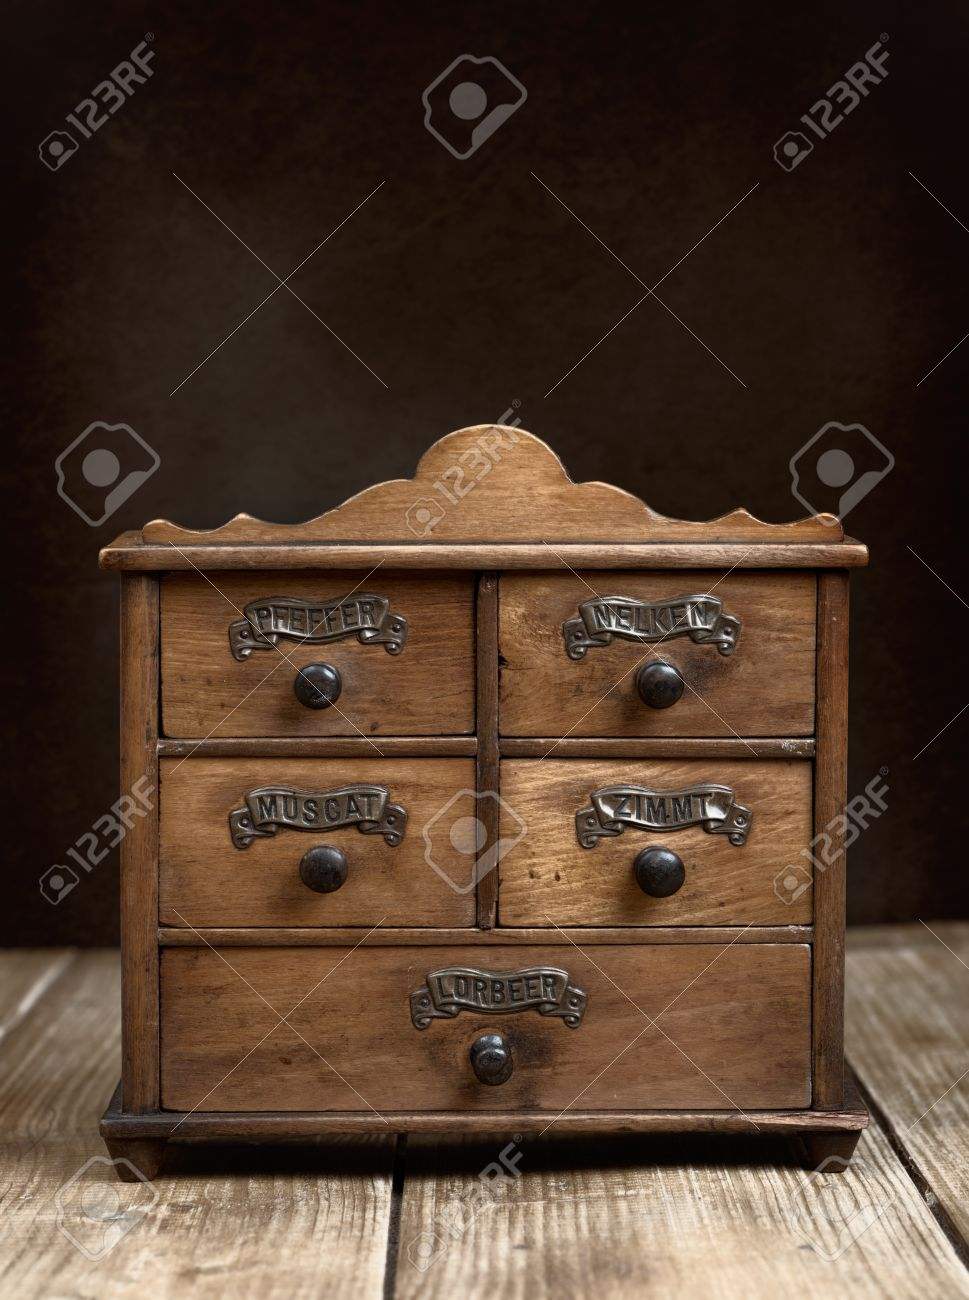 Vintage spice cabinet on rustic wooden table Stock Photo - 25437324 - Vintage Spice Cabinet On Rustic Wooden Table Stock Photo, Picture